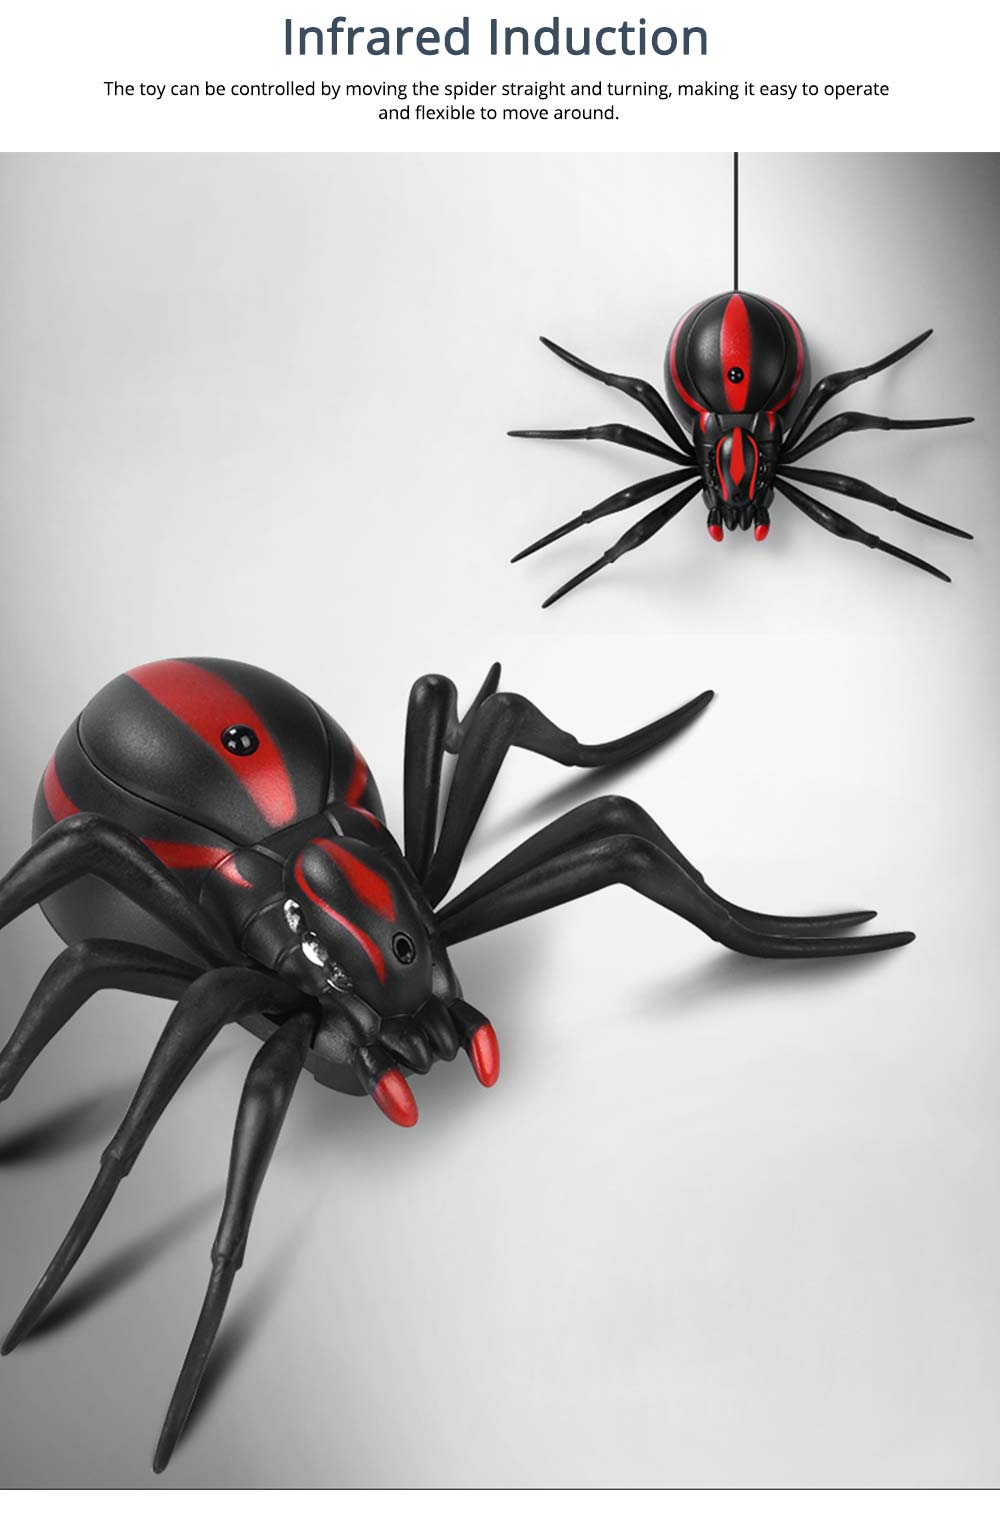 Imitation Electric Cool Spiders With Lighting Effects and Can Be Infrared Remote Control, Wacky Toy Same as Tik Tok 4